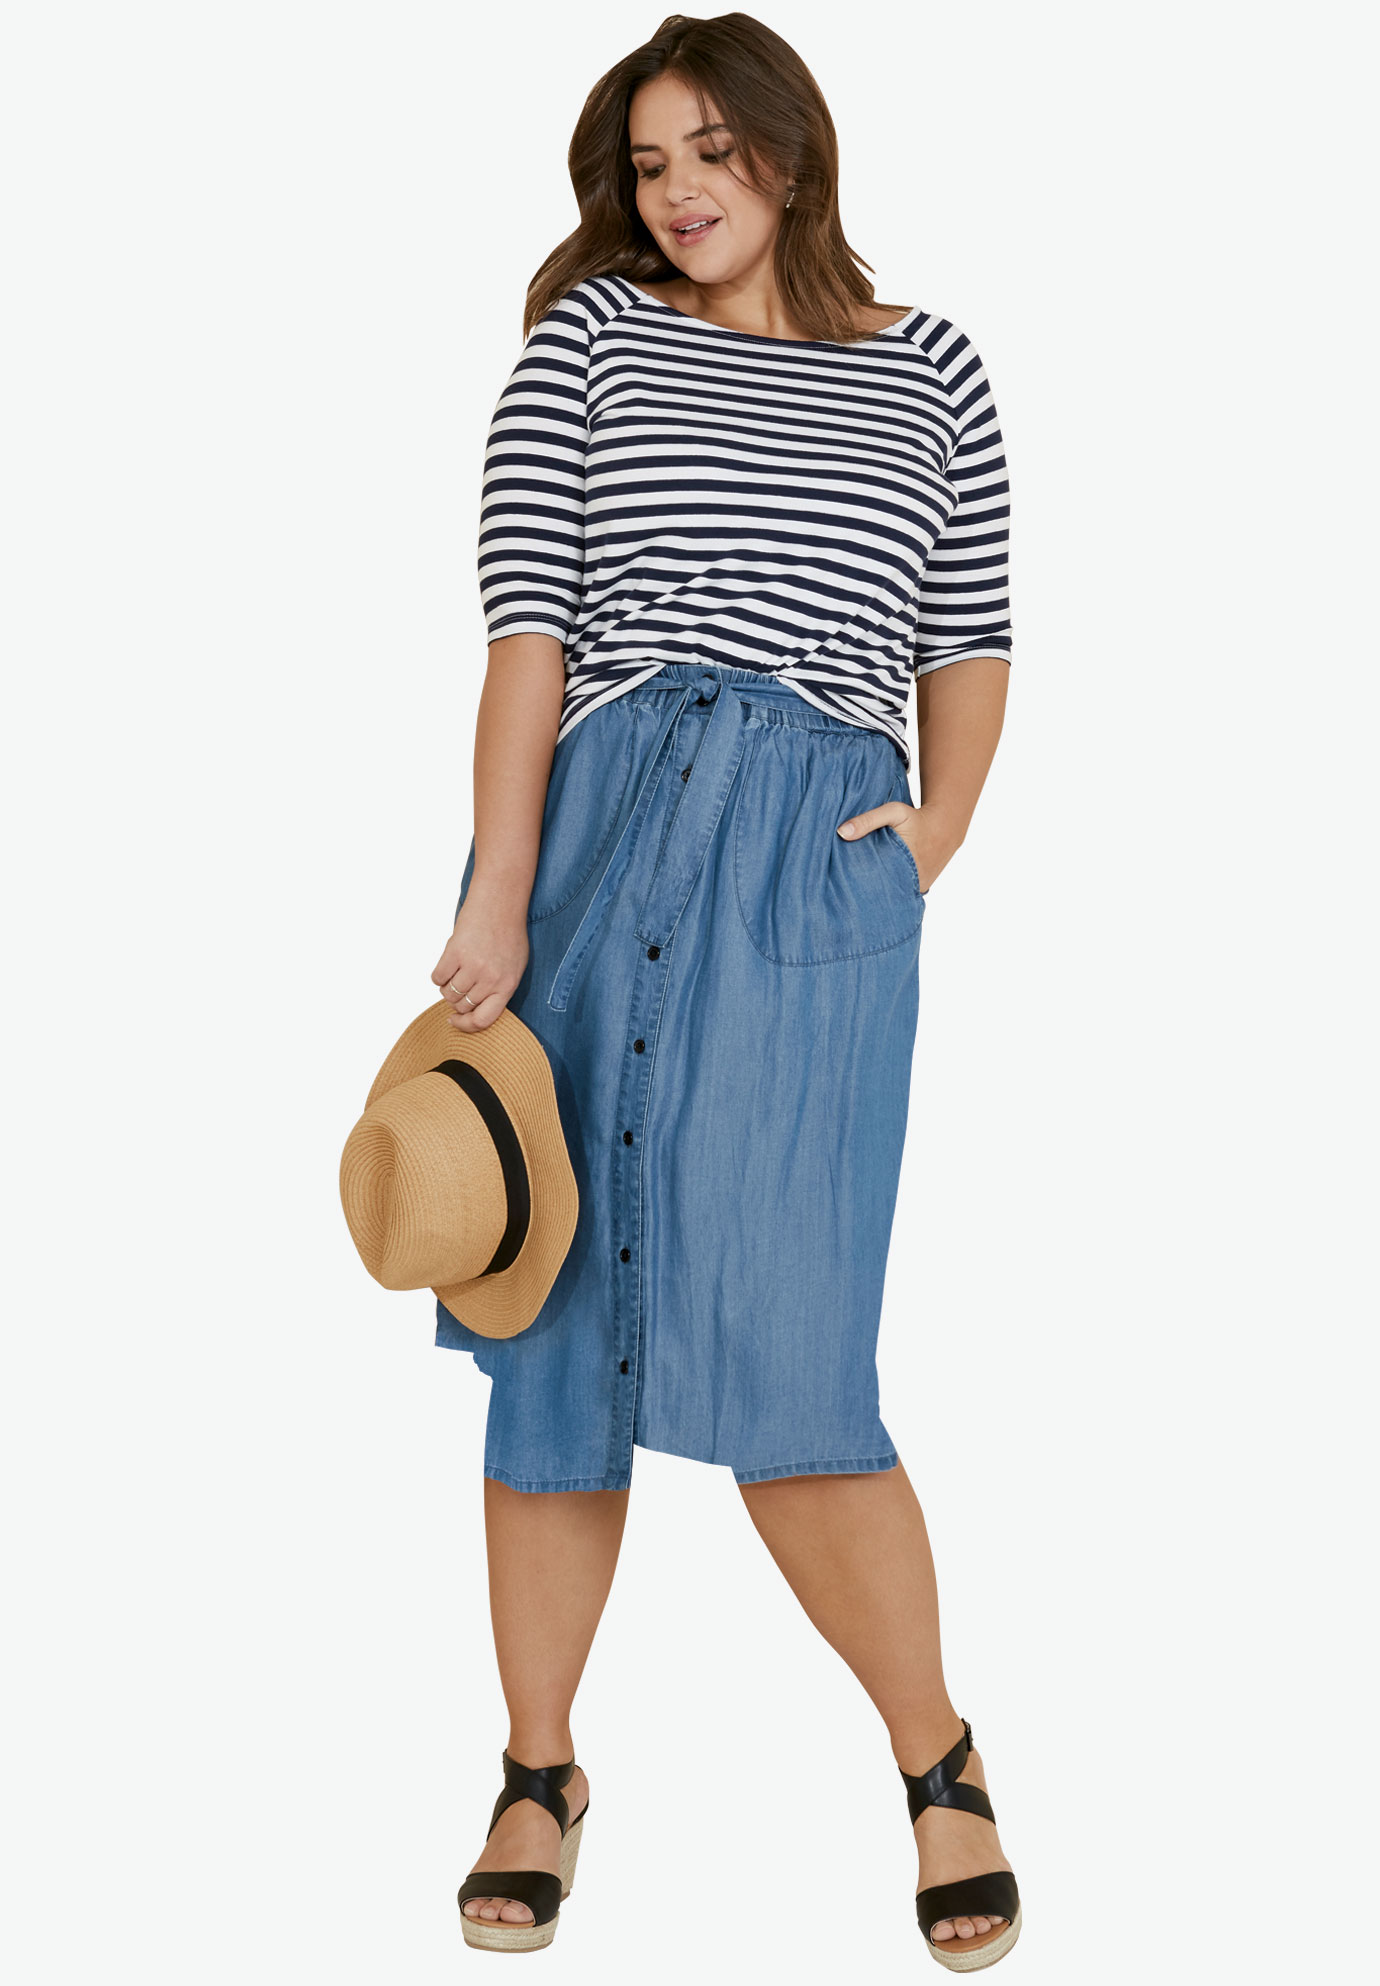 Off The Shoulder Tee by ellos®, NAVY/WHITE STRIPE, hi-res